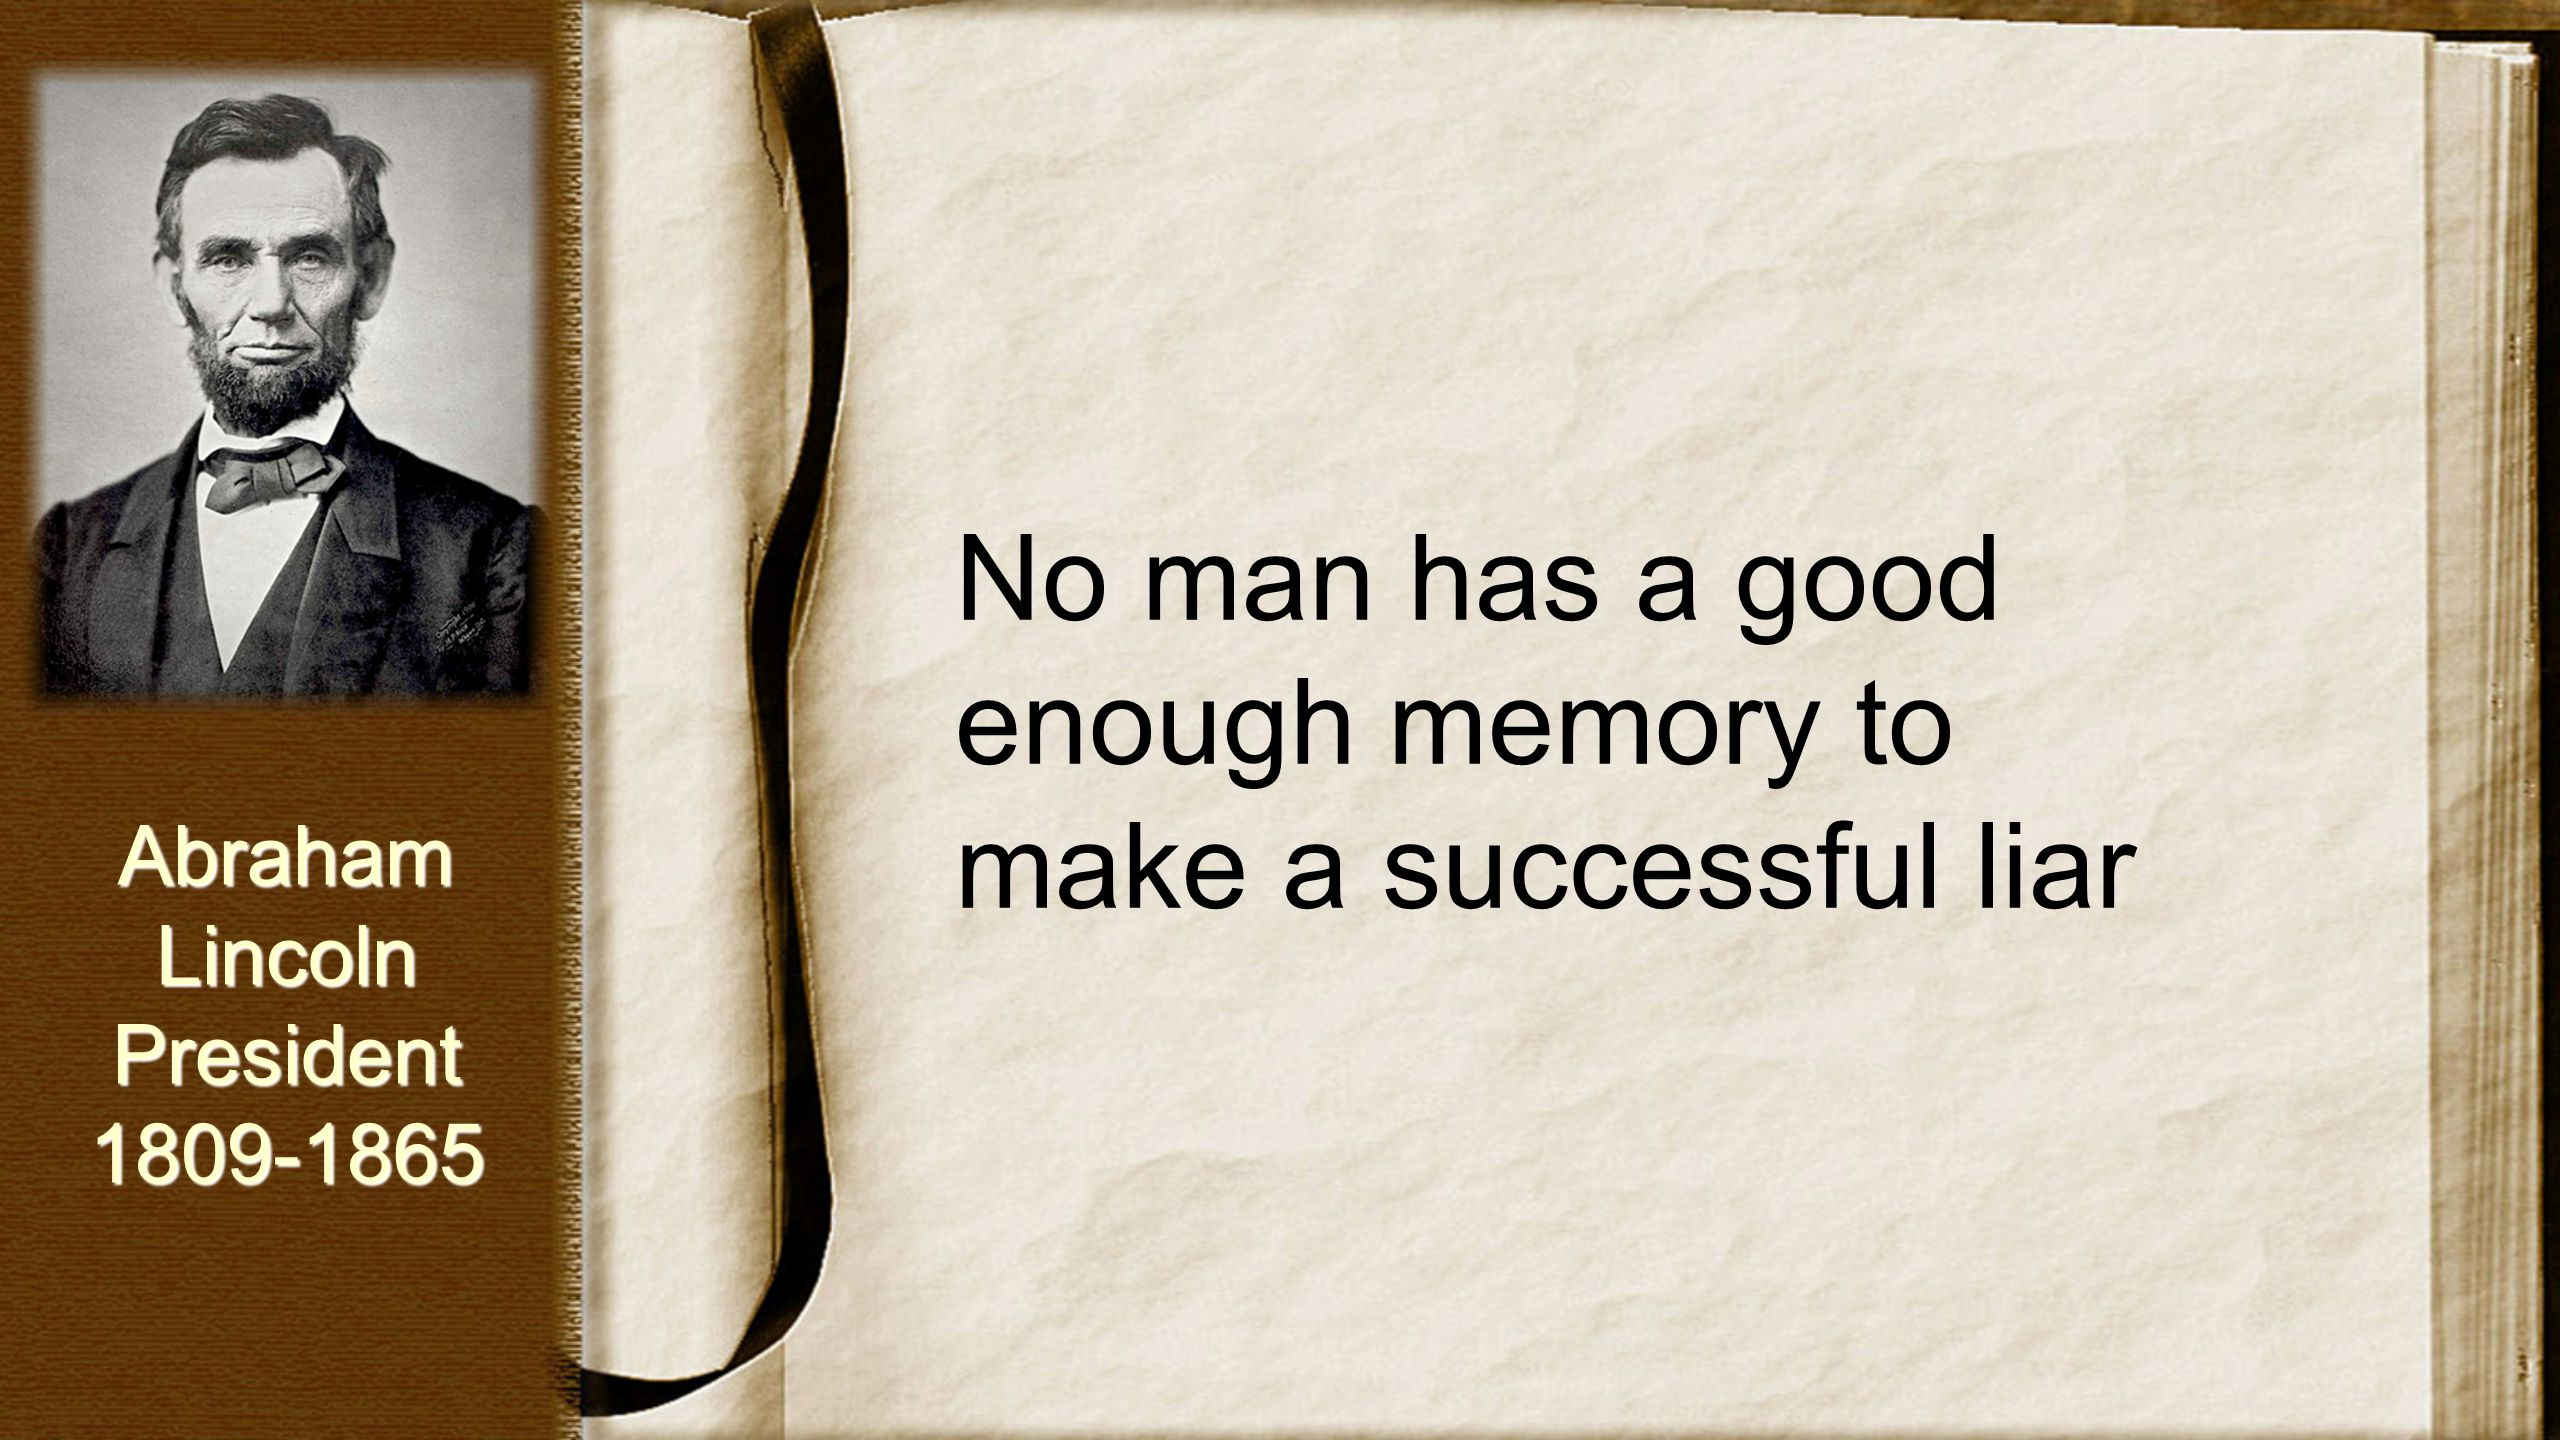 No man has a good enough memory to make a successful liar